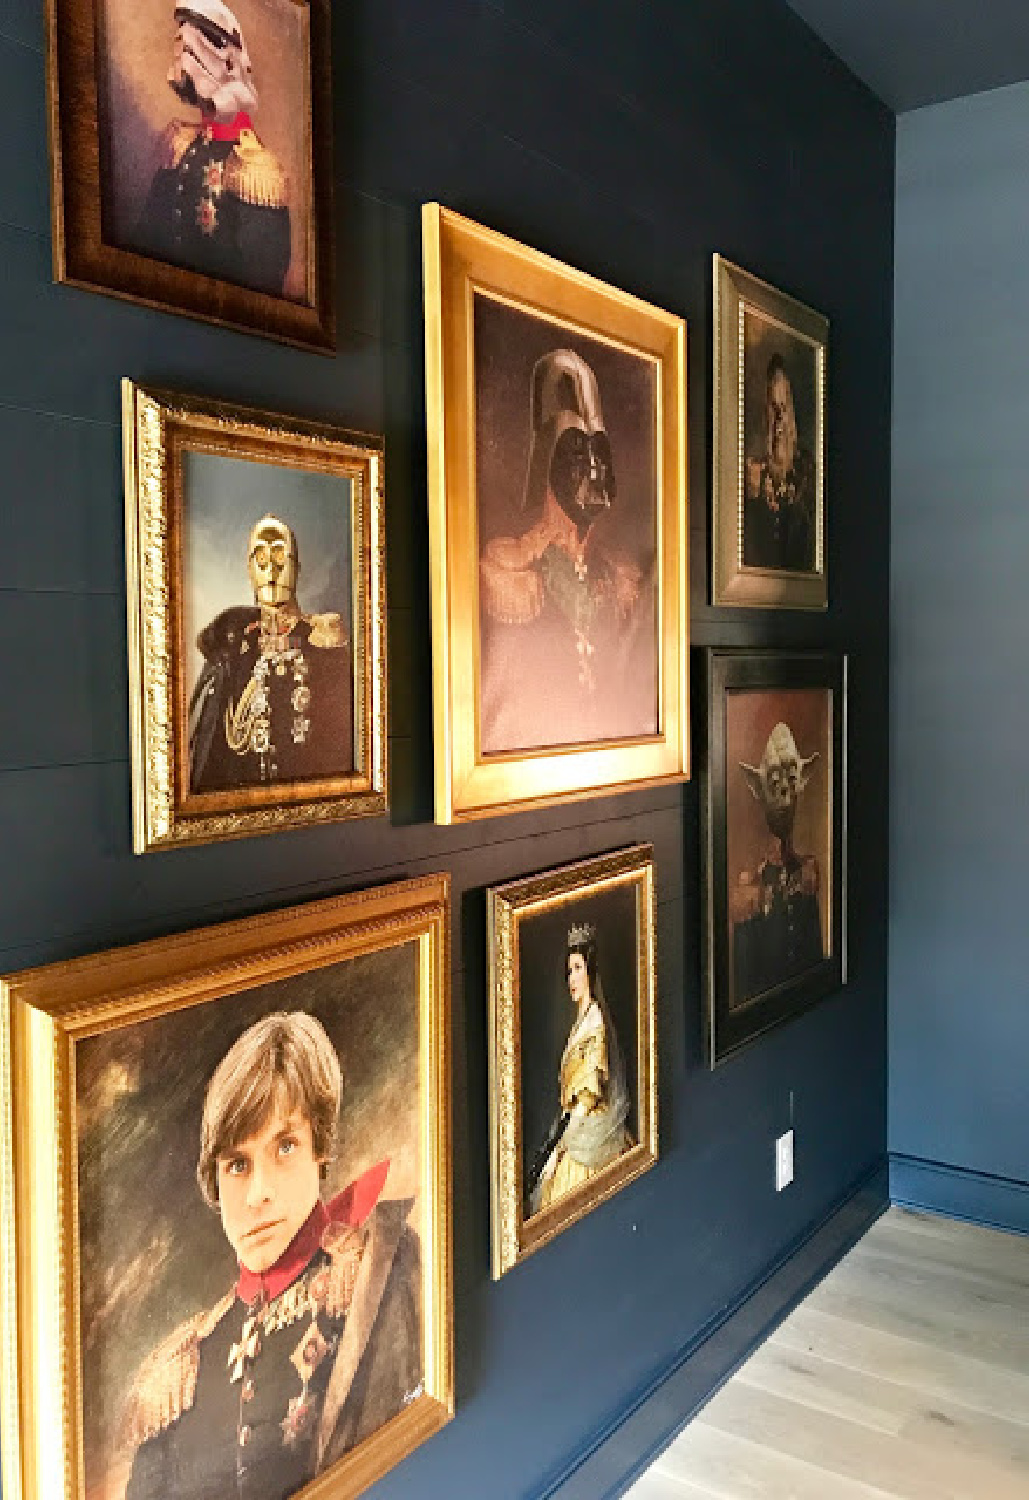 Hilarious Star Wars characters sit for oil paintings displayed on a gallery wall in a fun bedroom by Dana Lynch at the Pinewood Forest Idea House. Photo: Sherry Hart. #starwars #oilpaintings #whimsicaldecor #humor #artgallerywall #tealwalls #pineforestideahouse #atlantashowhouse